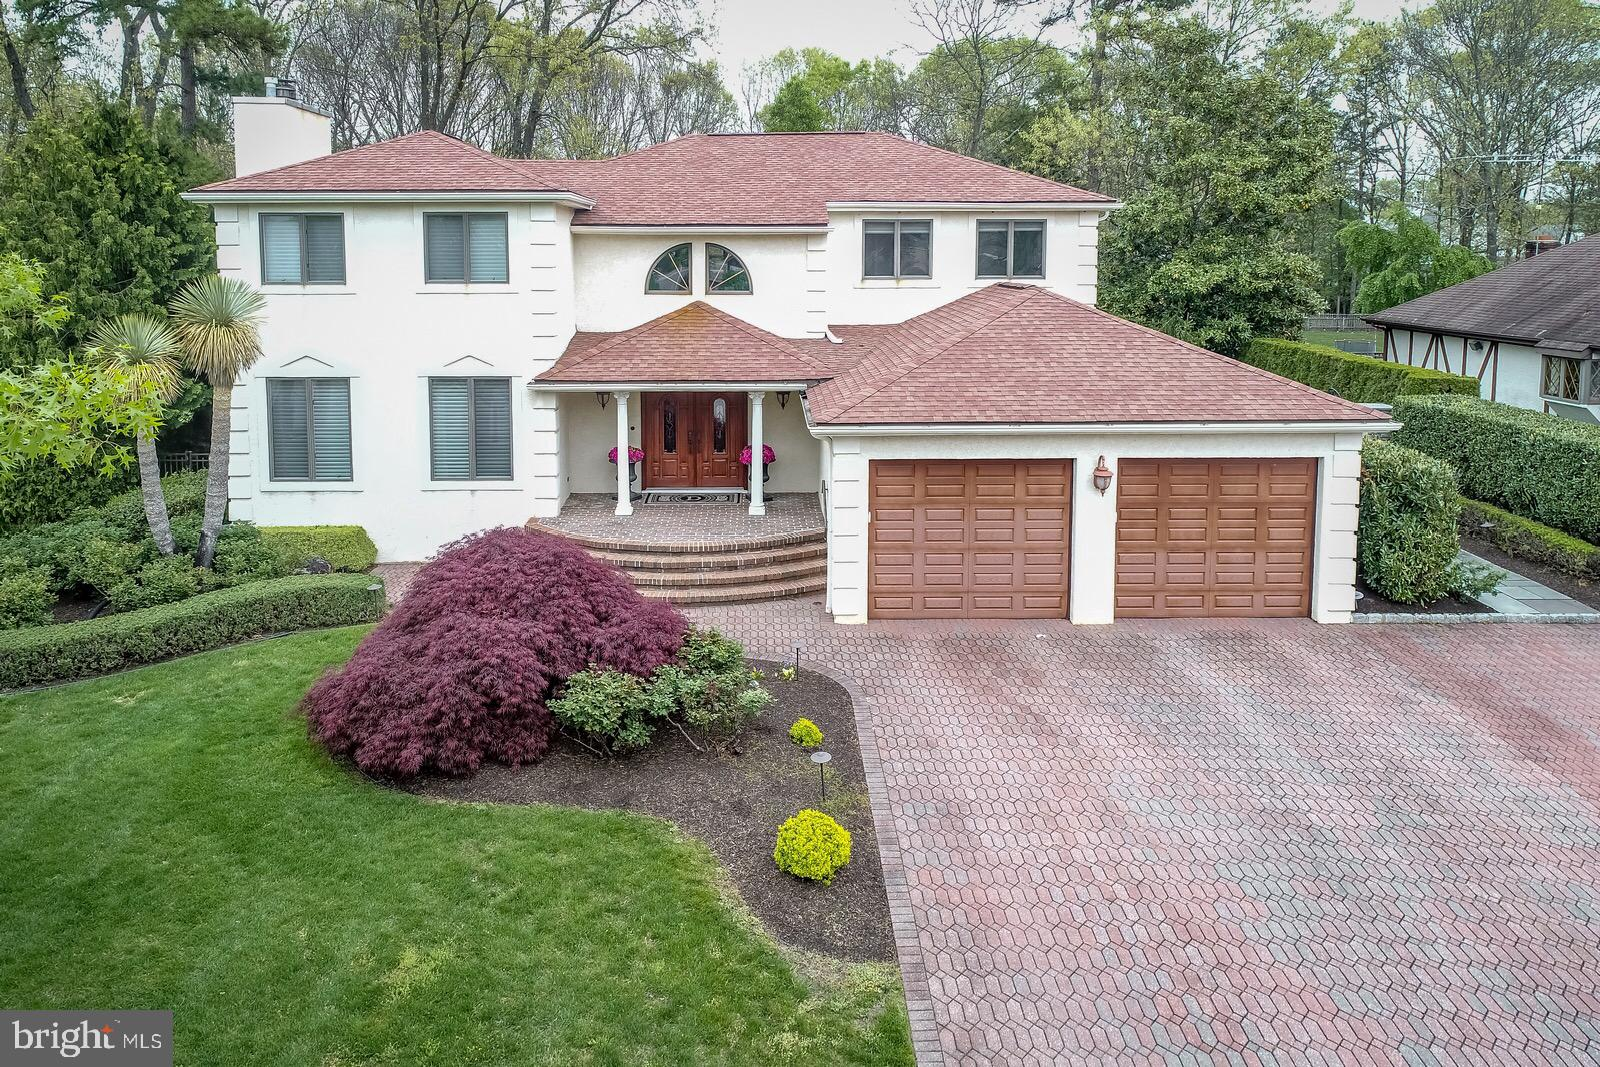 135 WINDING WAY, HAMMONTON, NJ 08037